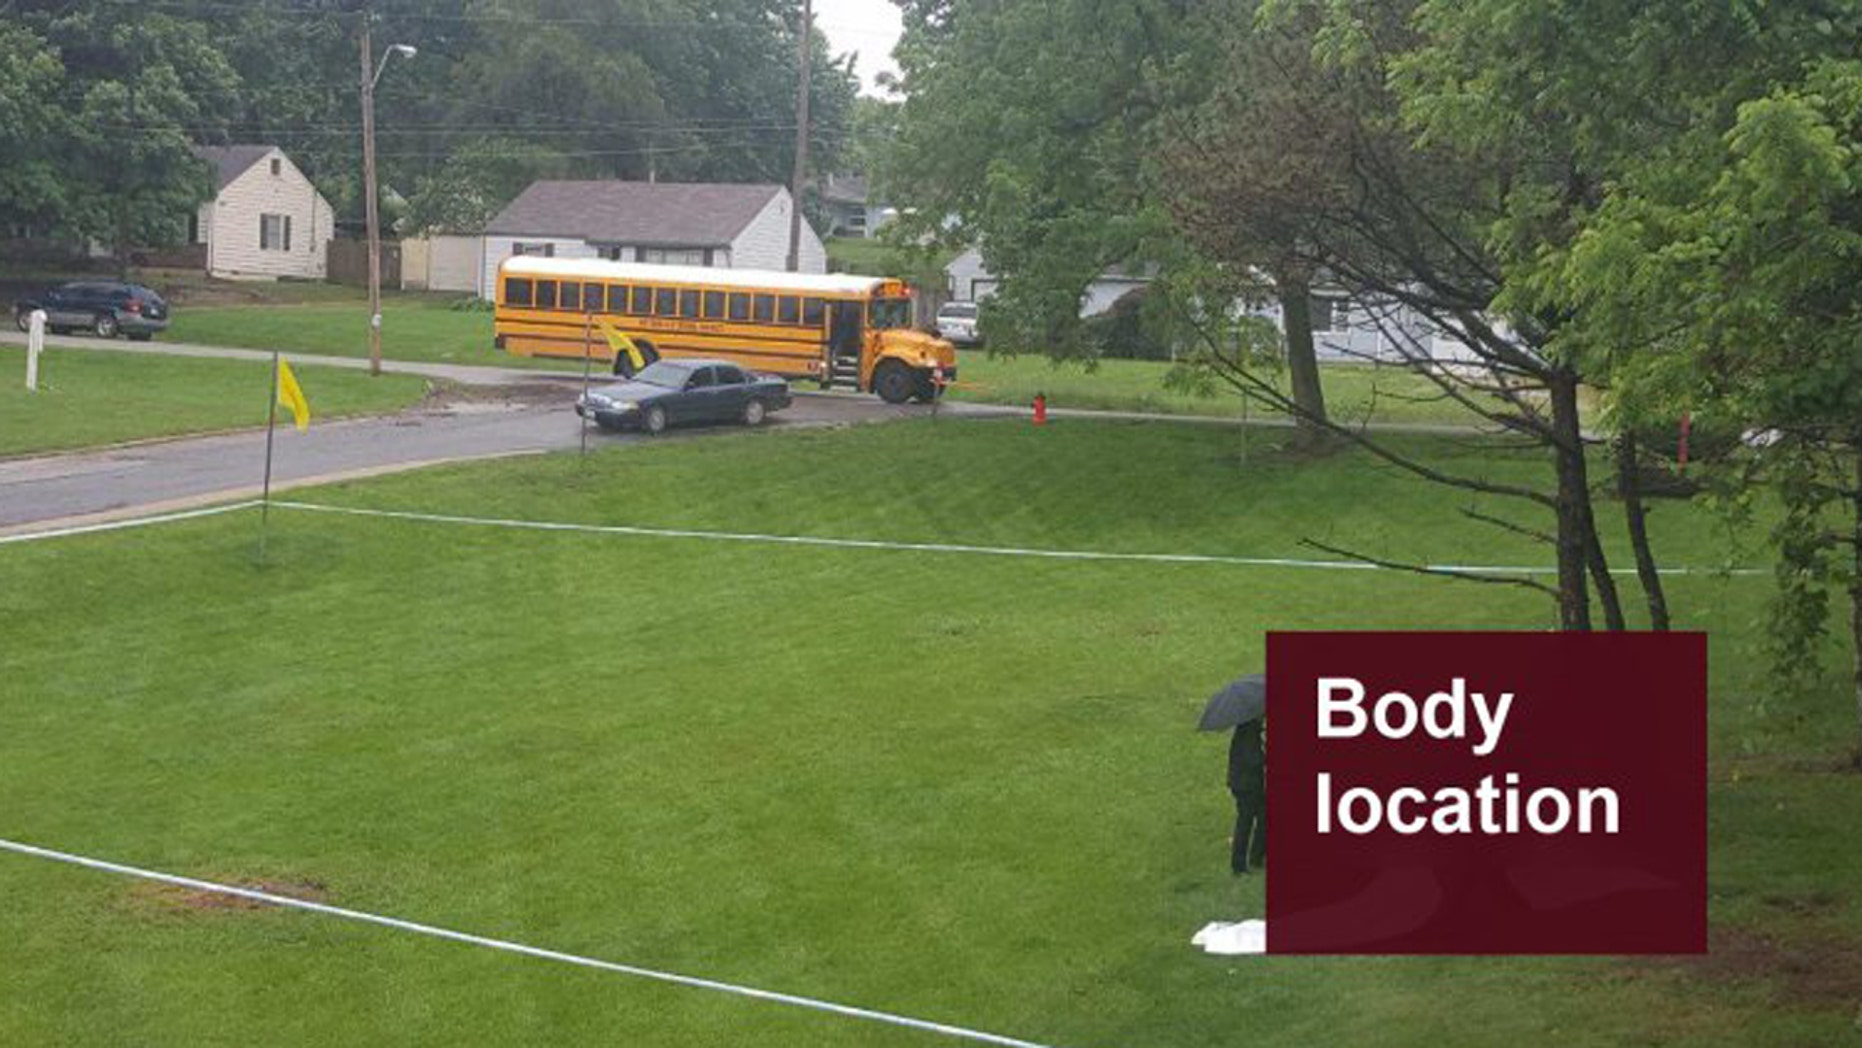 The scene where a body was found in a residential area when the bus of children passed by.